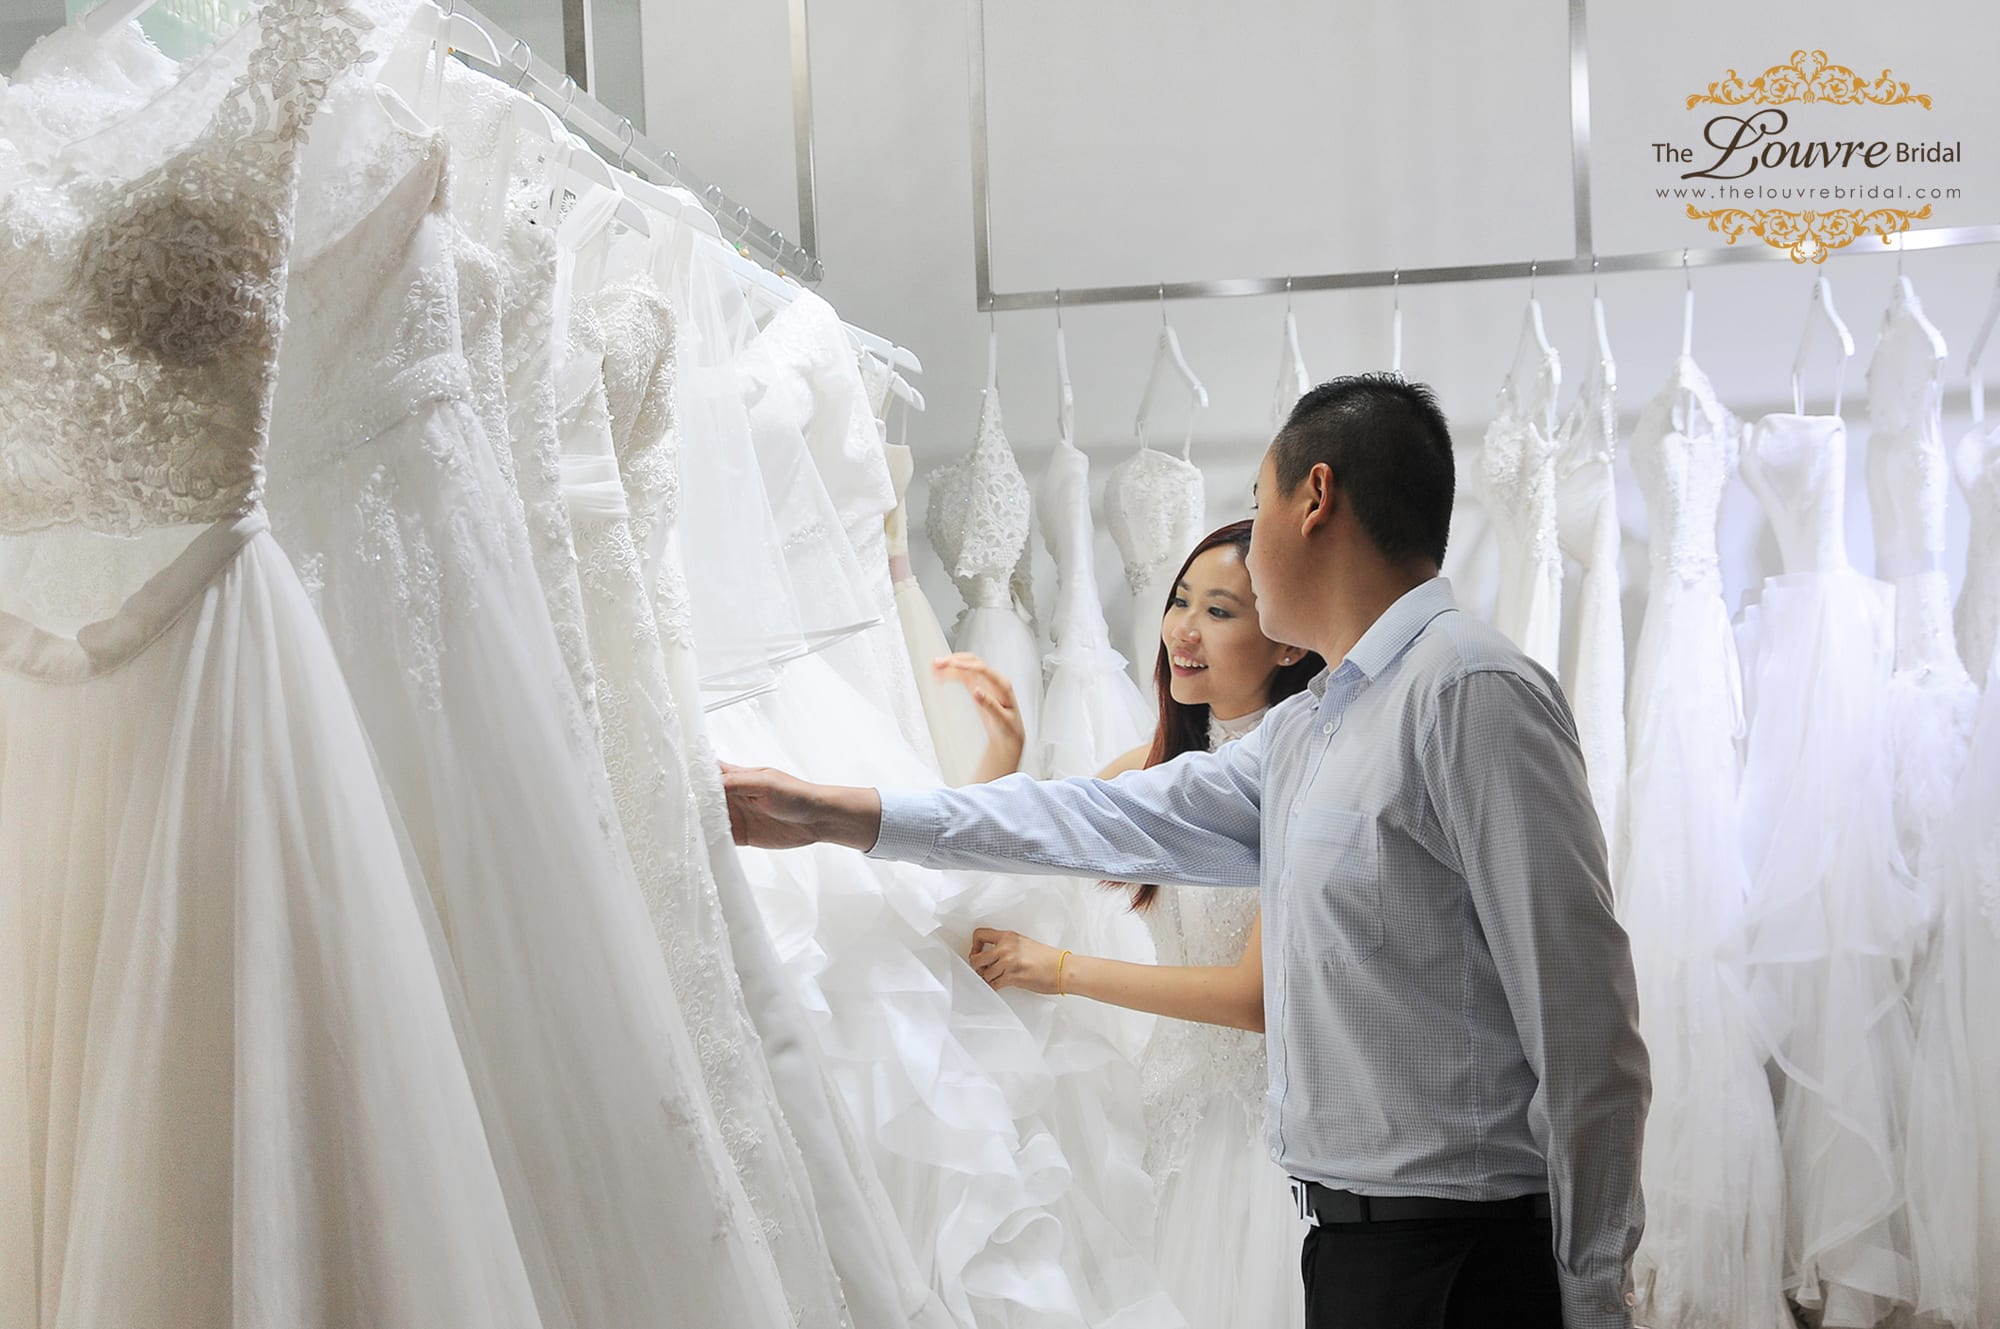 Wedding Package – Engaging a One-Stop Bridal Boutique or A-la-carte Wedding Services